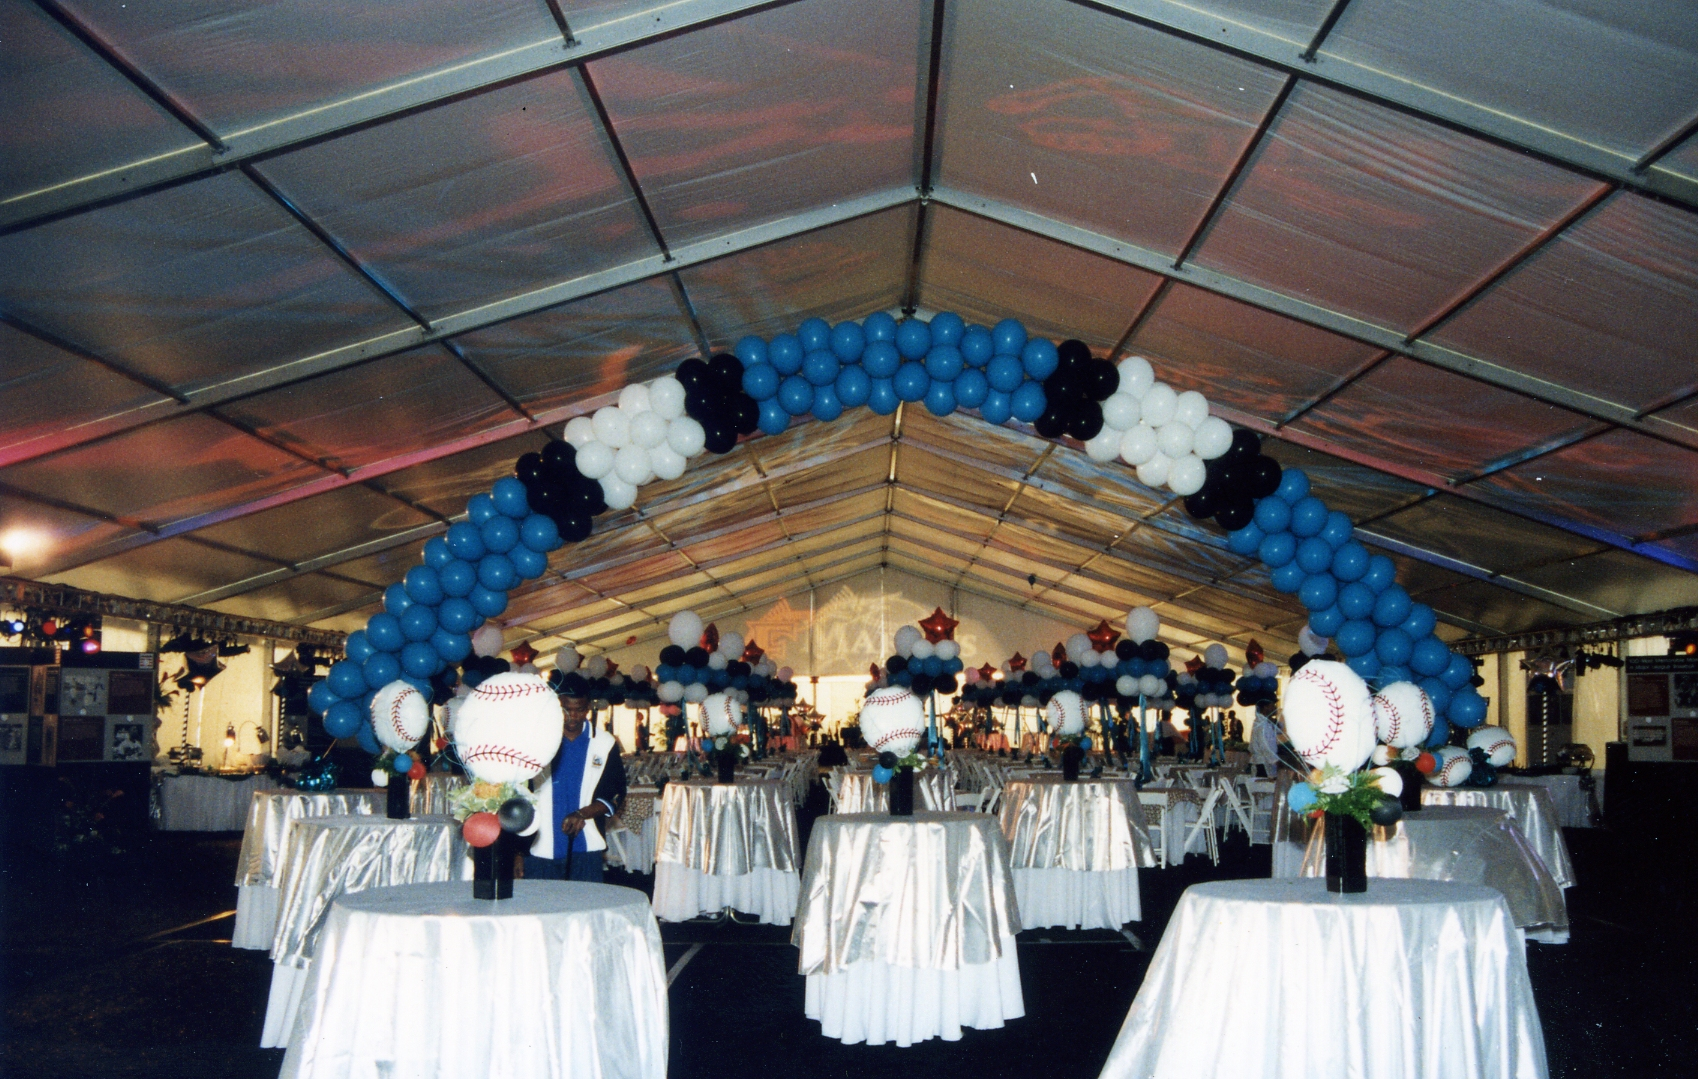 Best balloon balloon arches in fort lauderdale our colorful balloon arches can enhance all areas of your special event including but not limited to stage decor entrance decor dance floor decor junglespirit Choice Image